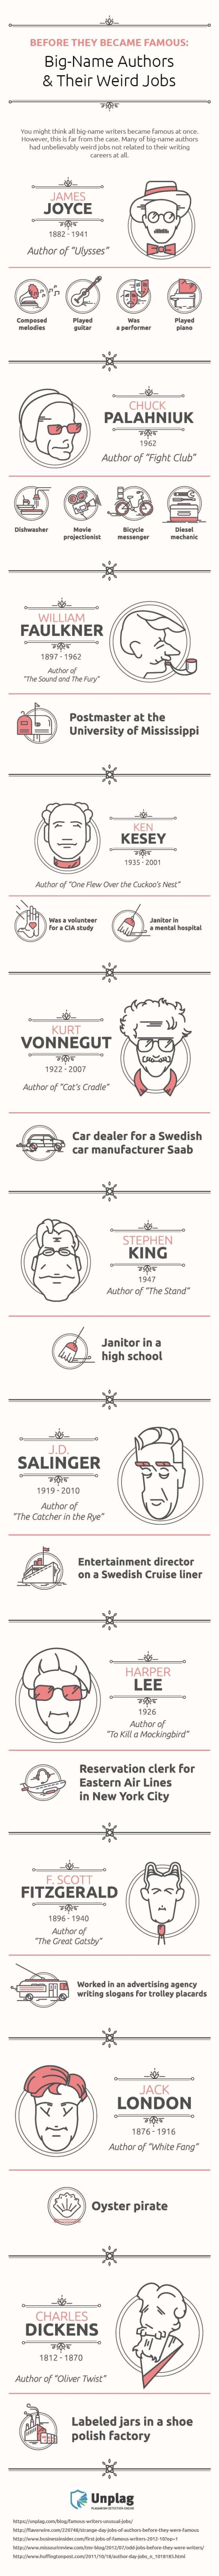 Infographic: Famous Authors and Their Weird Jobs Infographic